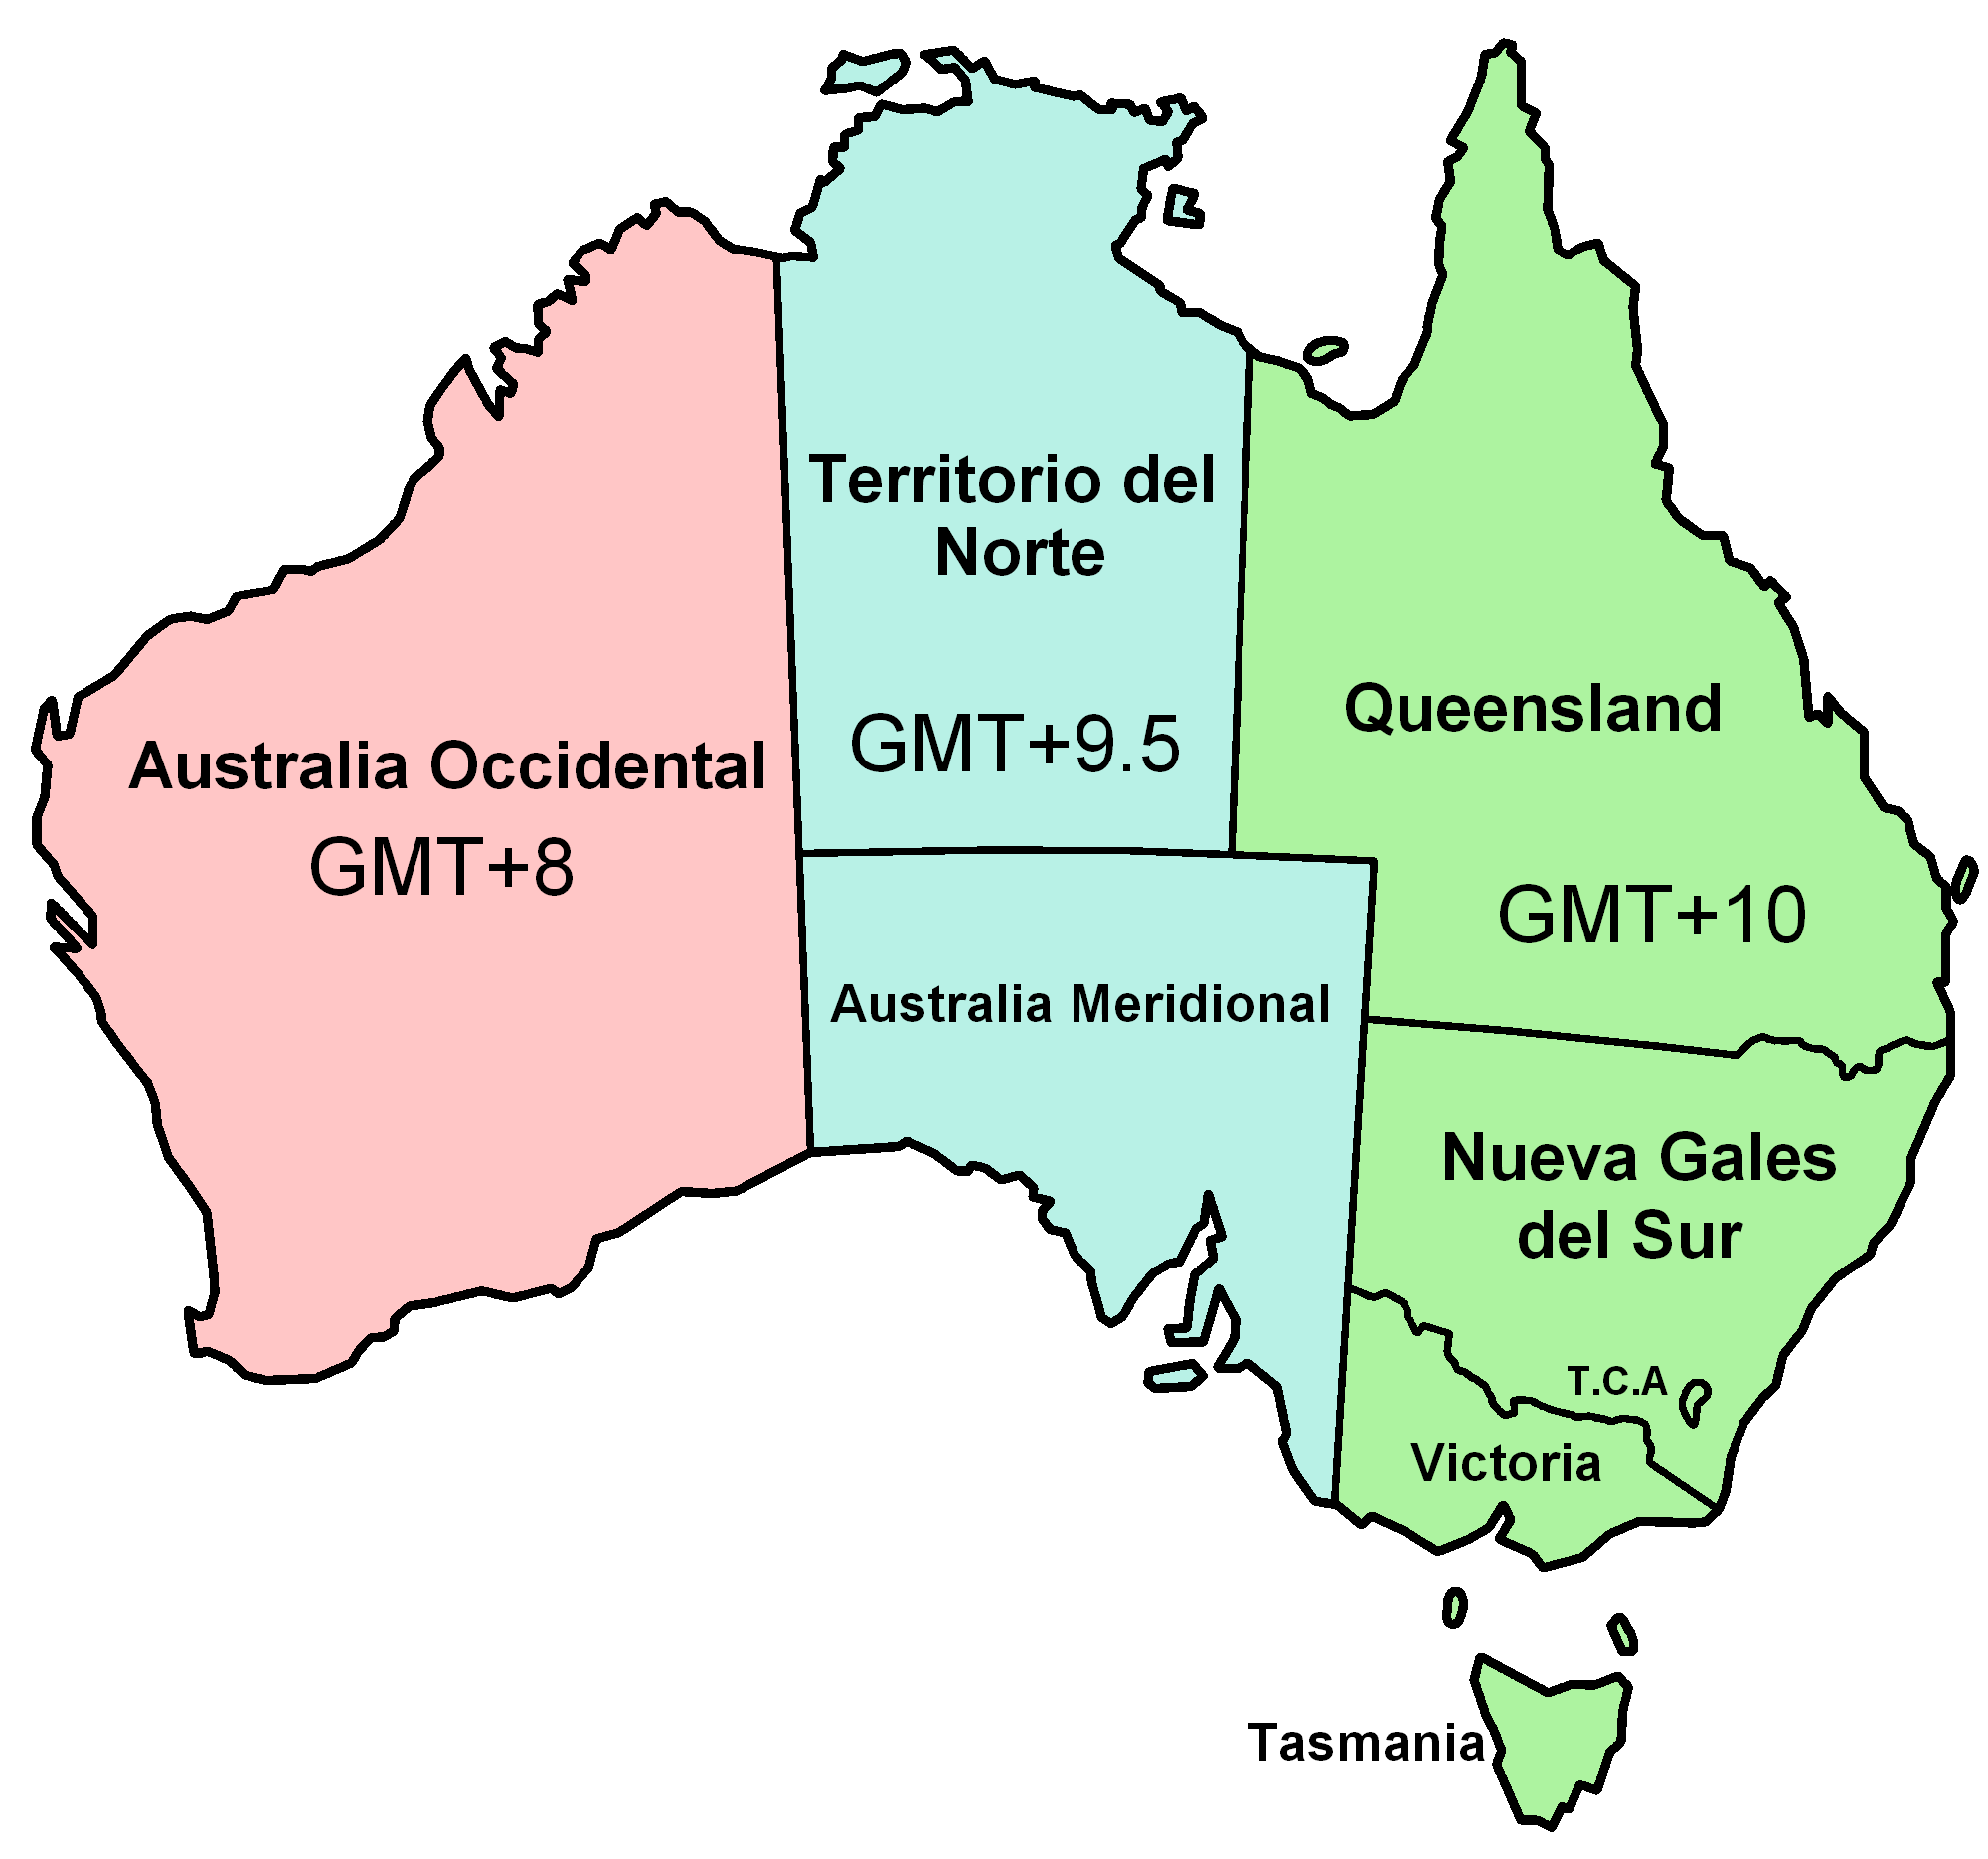 What was the date in Australia